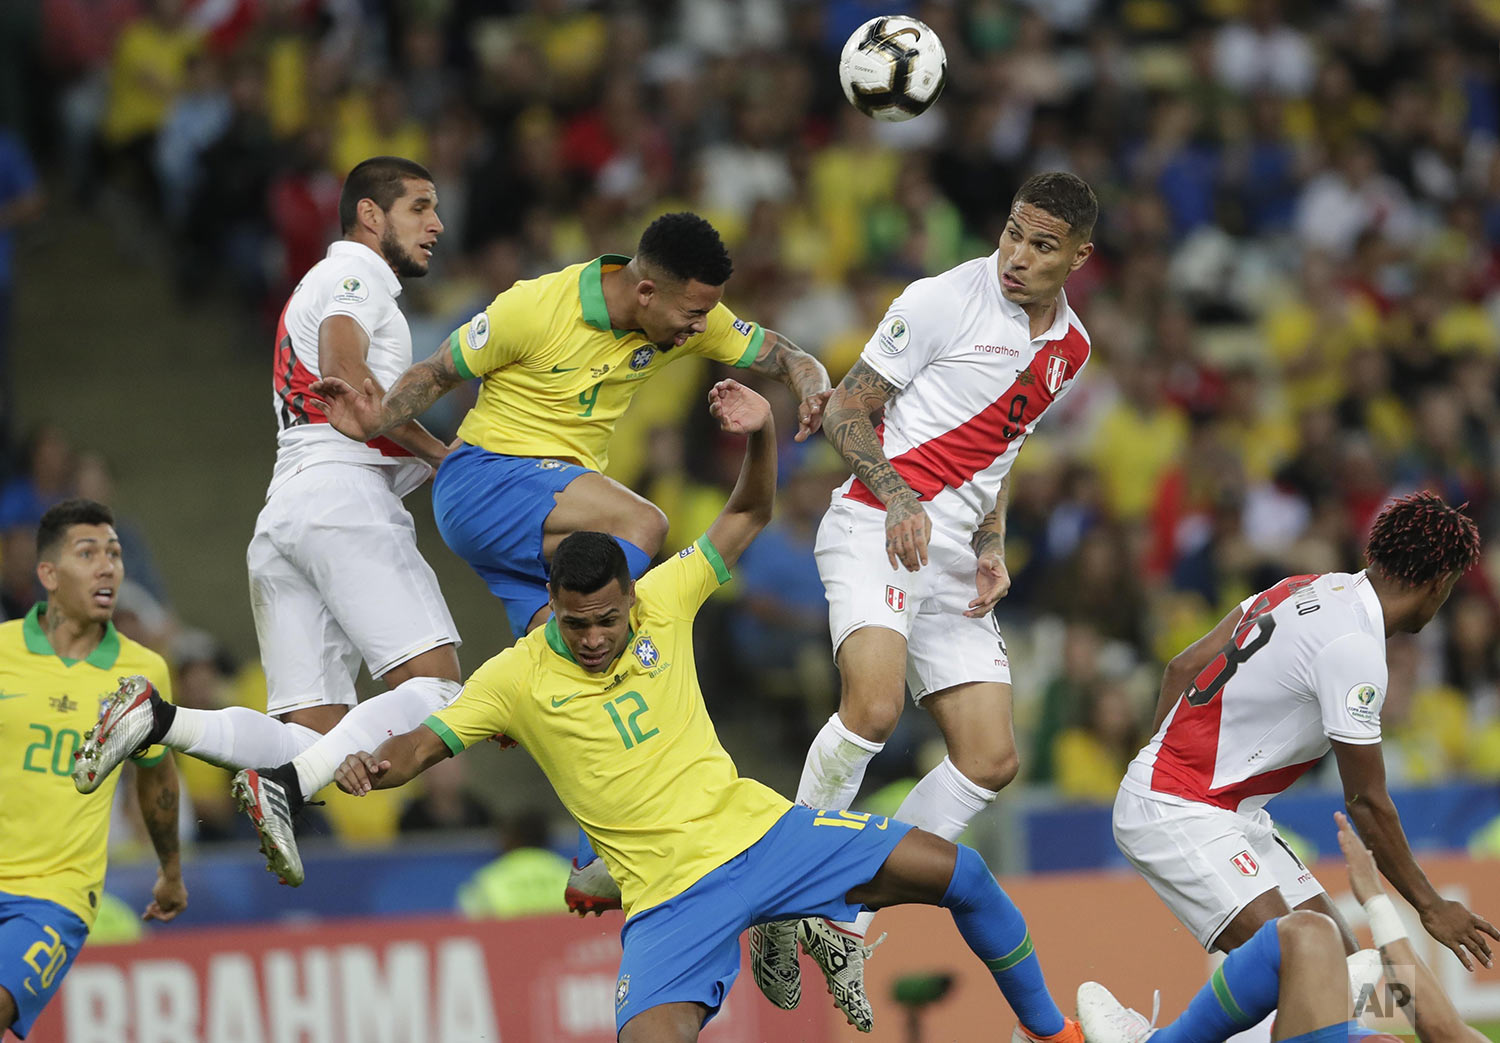 Brazil's Gabriel Jesus, center left, goes for a header with Peru's Paolo Guerrero, center right, during the final match of the Copa America at Maracana stadium in Rio de Janeiro, Brazil, Sunday, July 7, 2019.  Brazil defeated Peru 3-1 and became the Copa America champion. (AP Photo/Silvia Izquierdo)